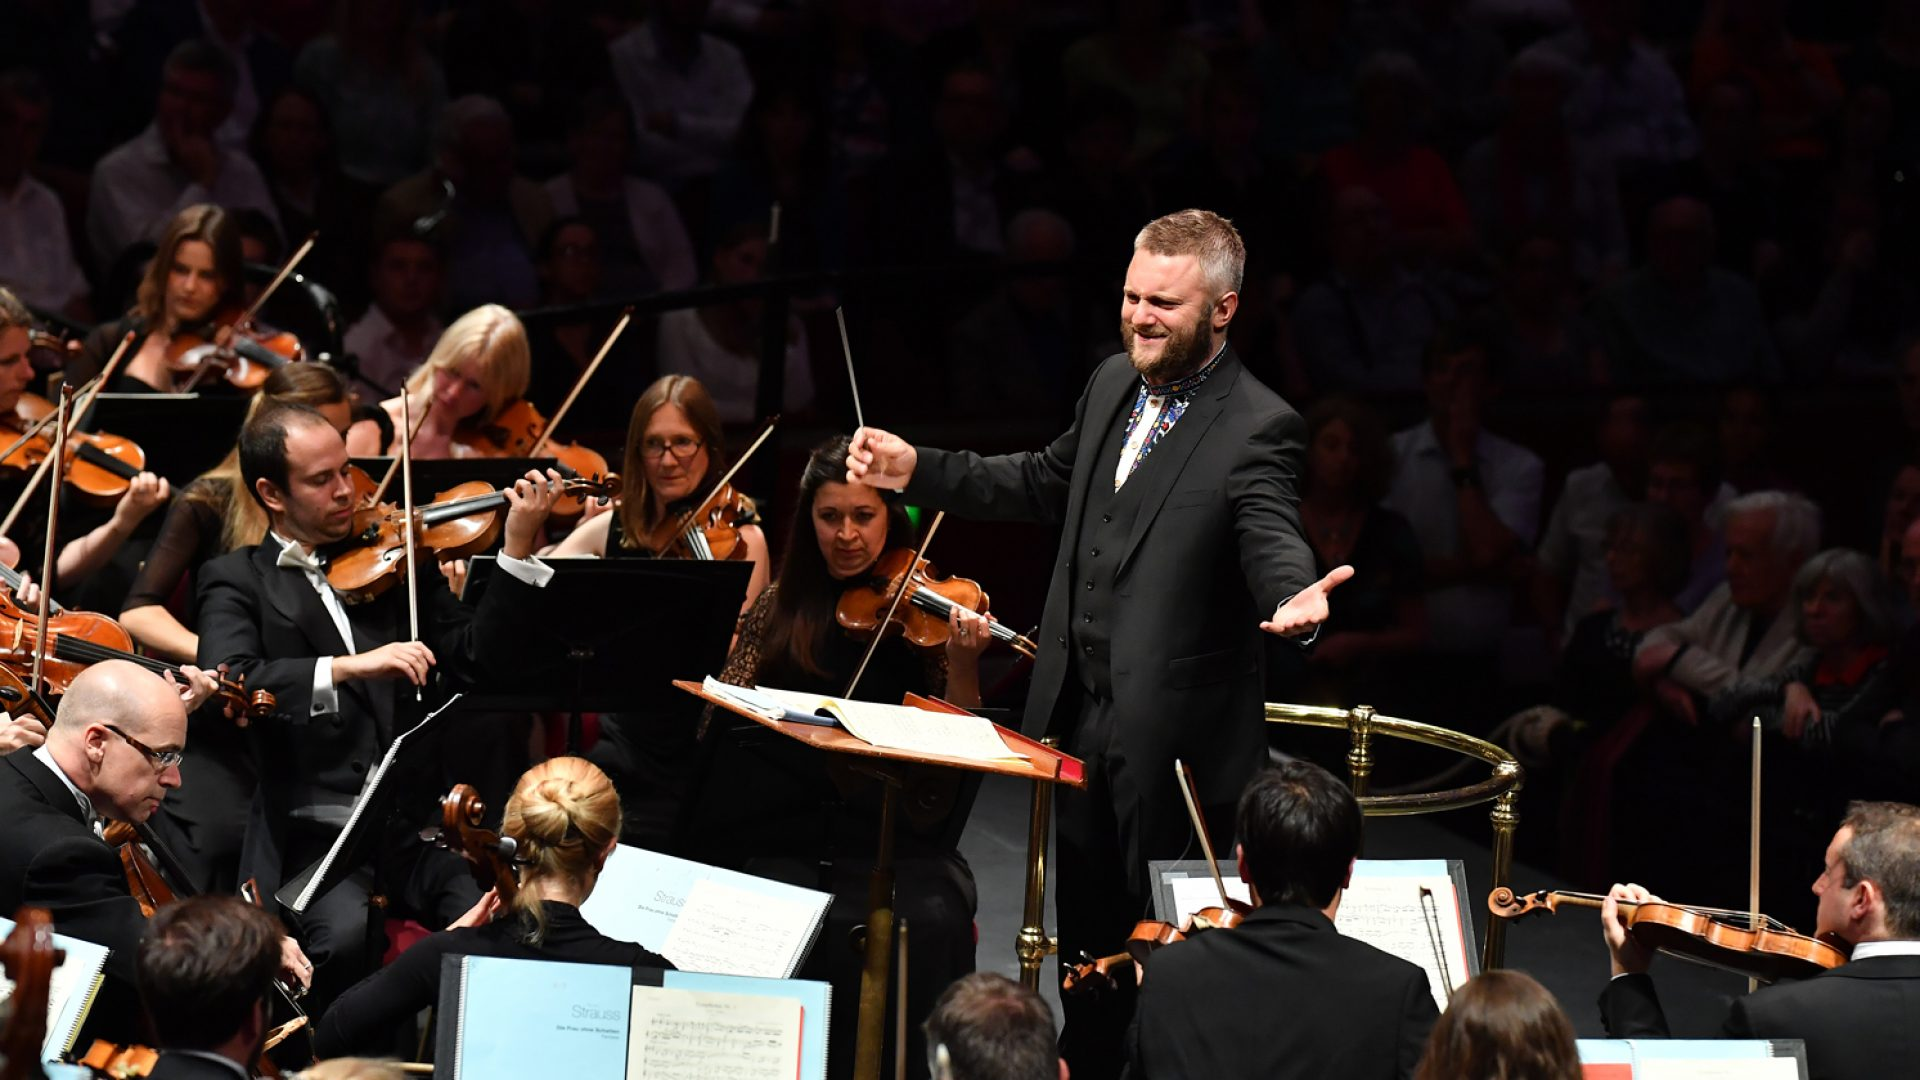 Interview with Kirill Karabits